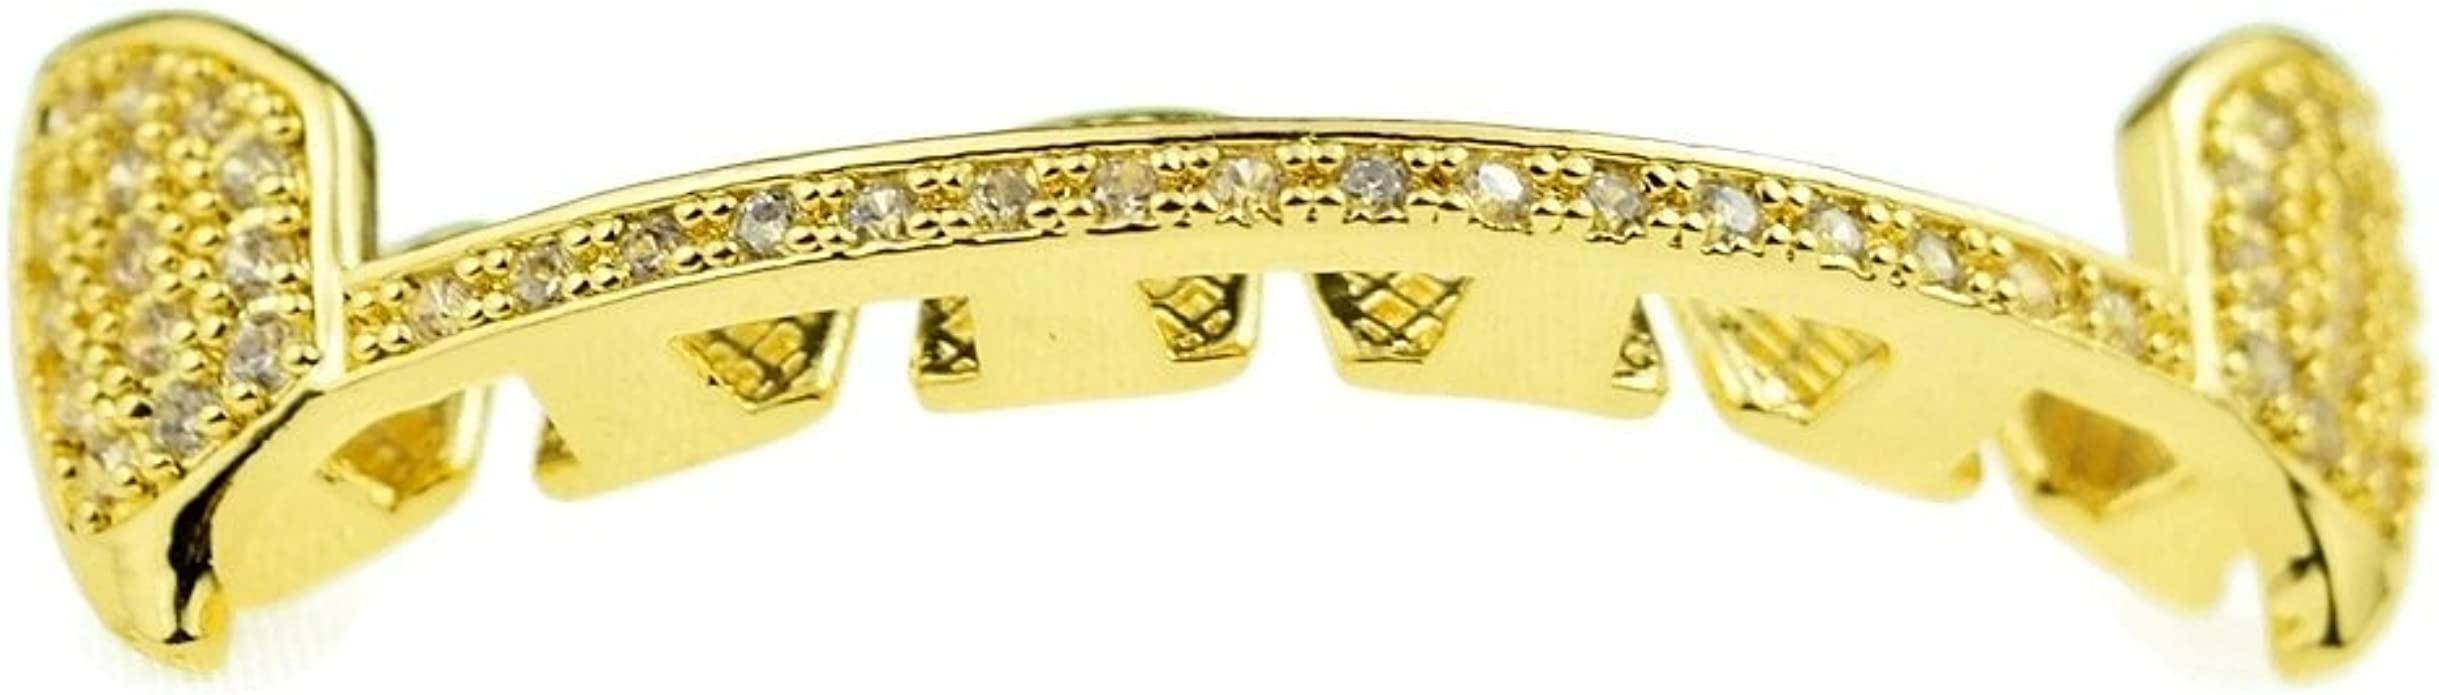 Details about  /Italy 14k White Gold filled Rappers Seethrough fang grillz 6 teeth Slug teeth